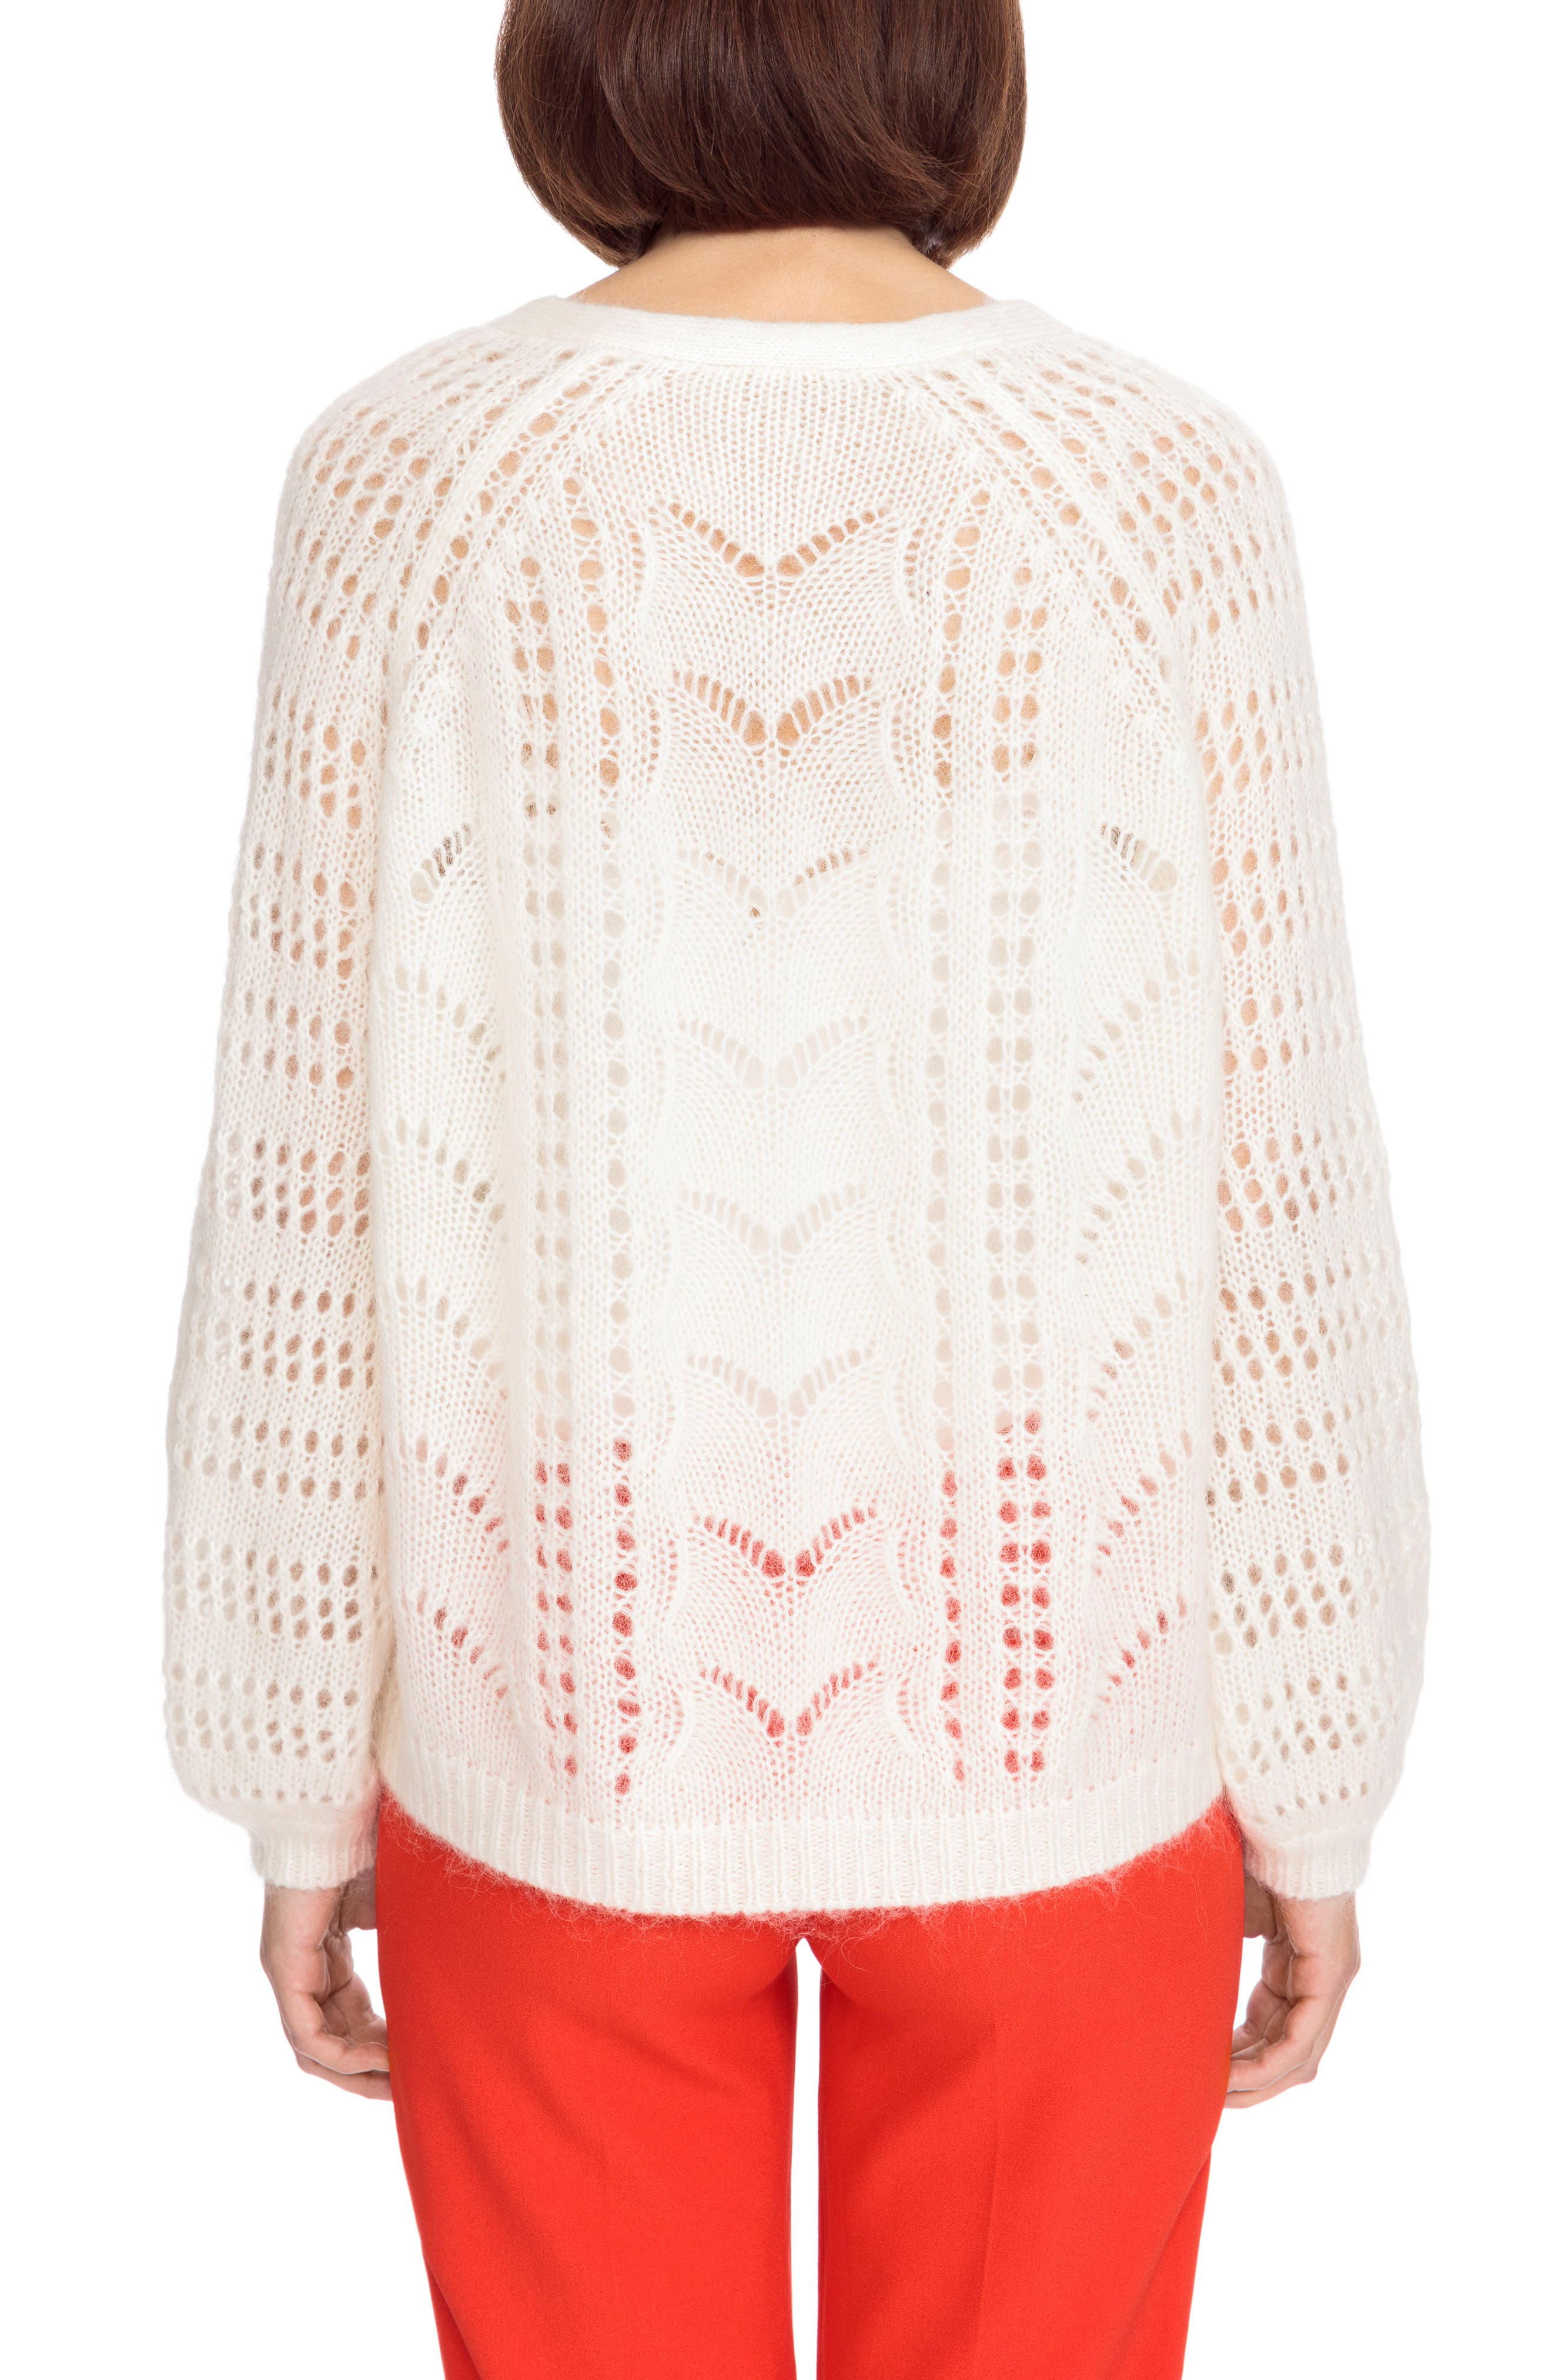 Dereck Cardigan,                             Alternate thumbnail 3, color,                             Off White